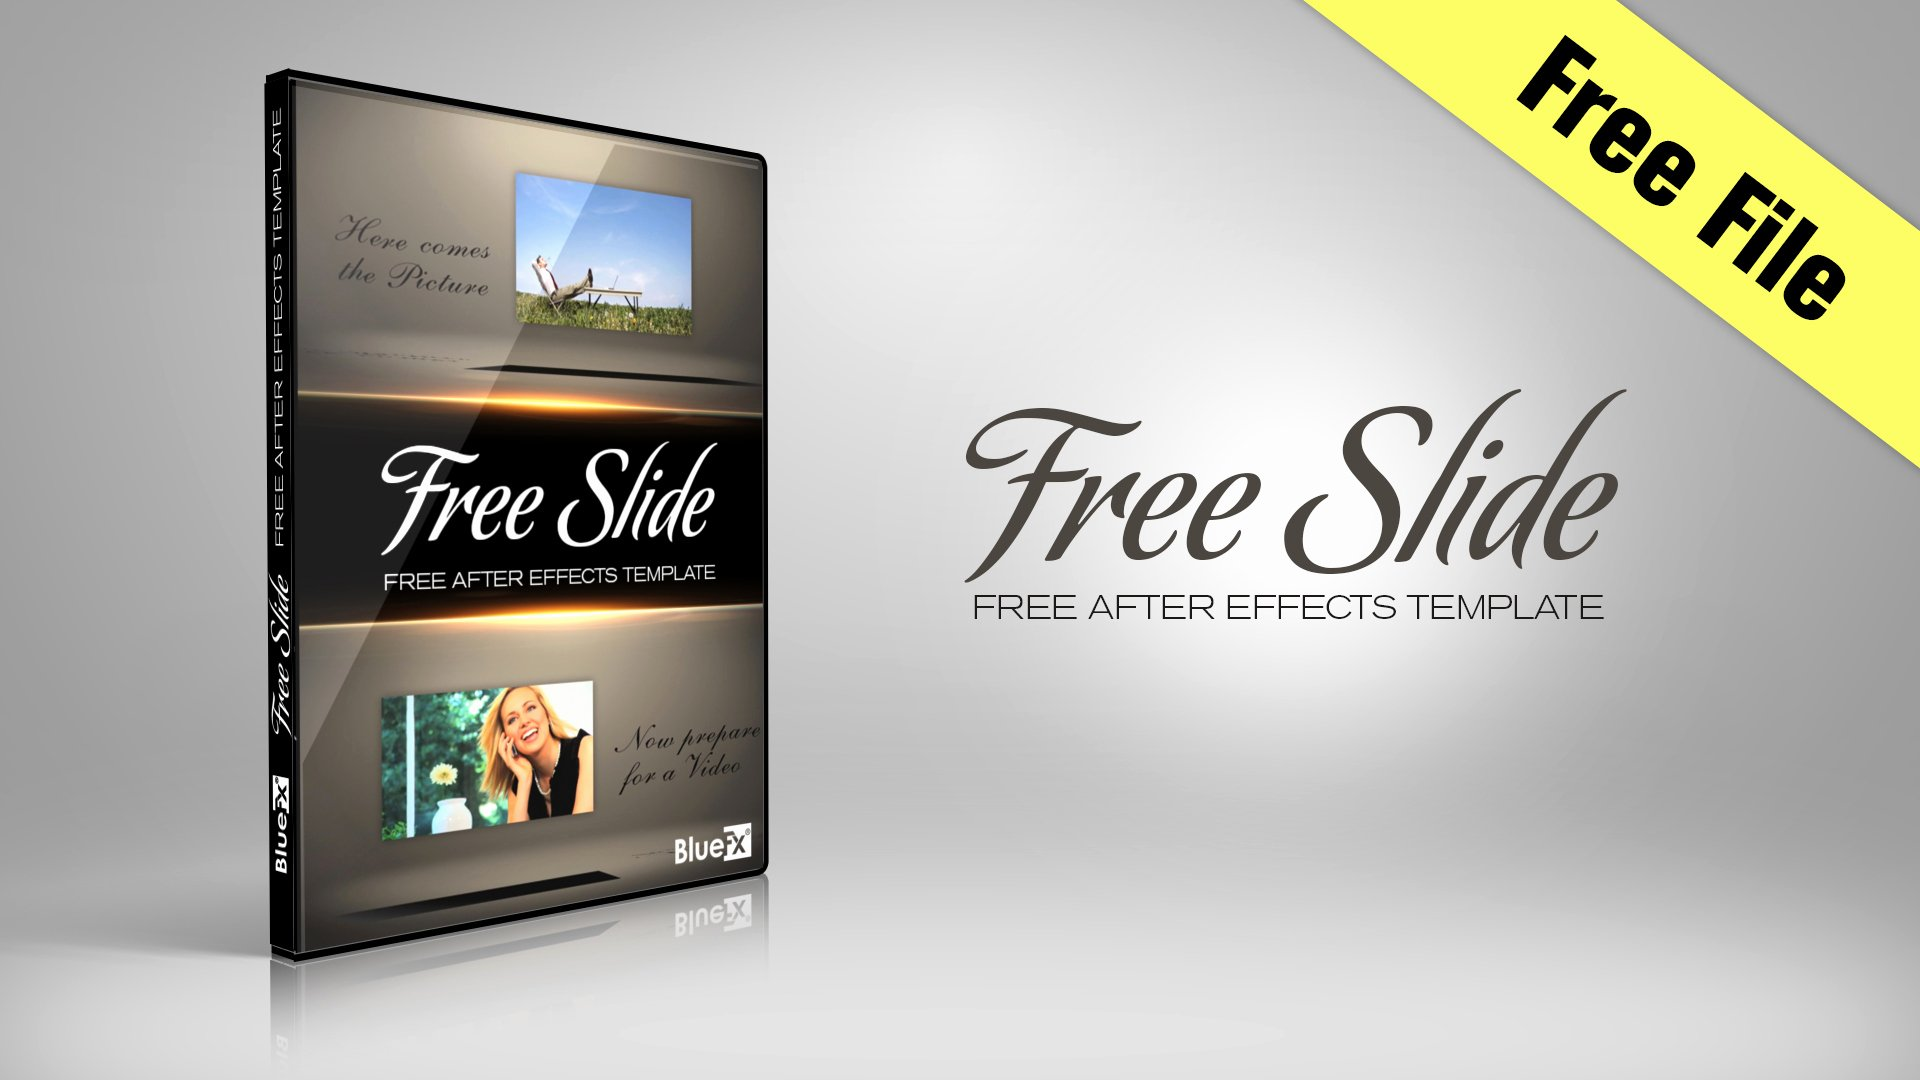 After Effects Slideshow Template Free